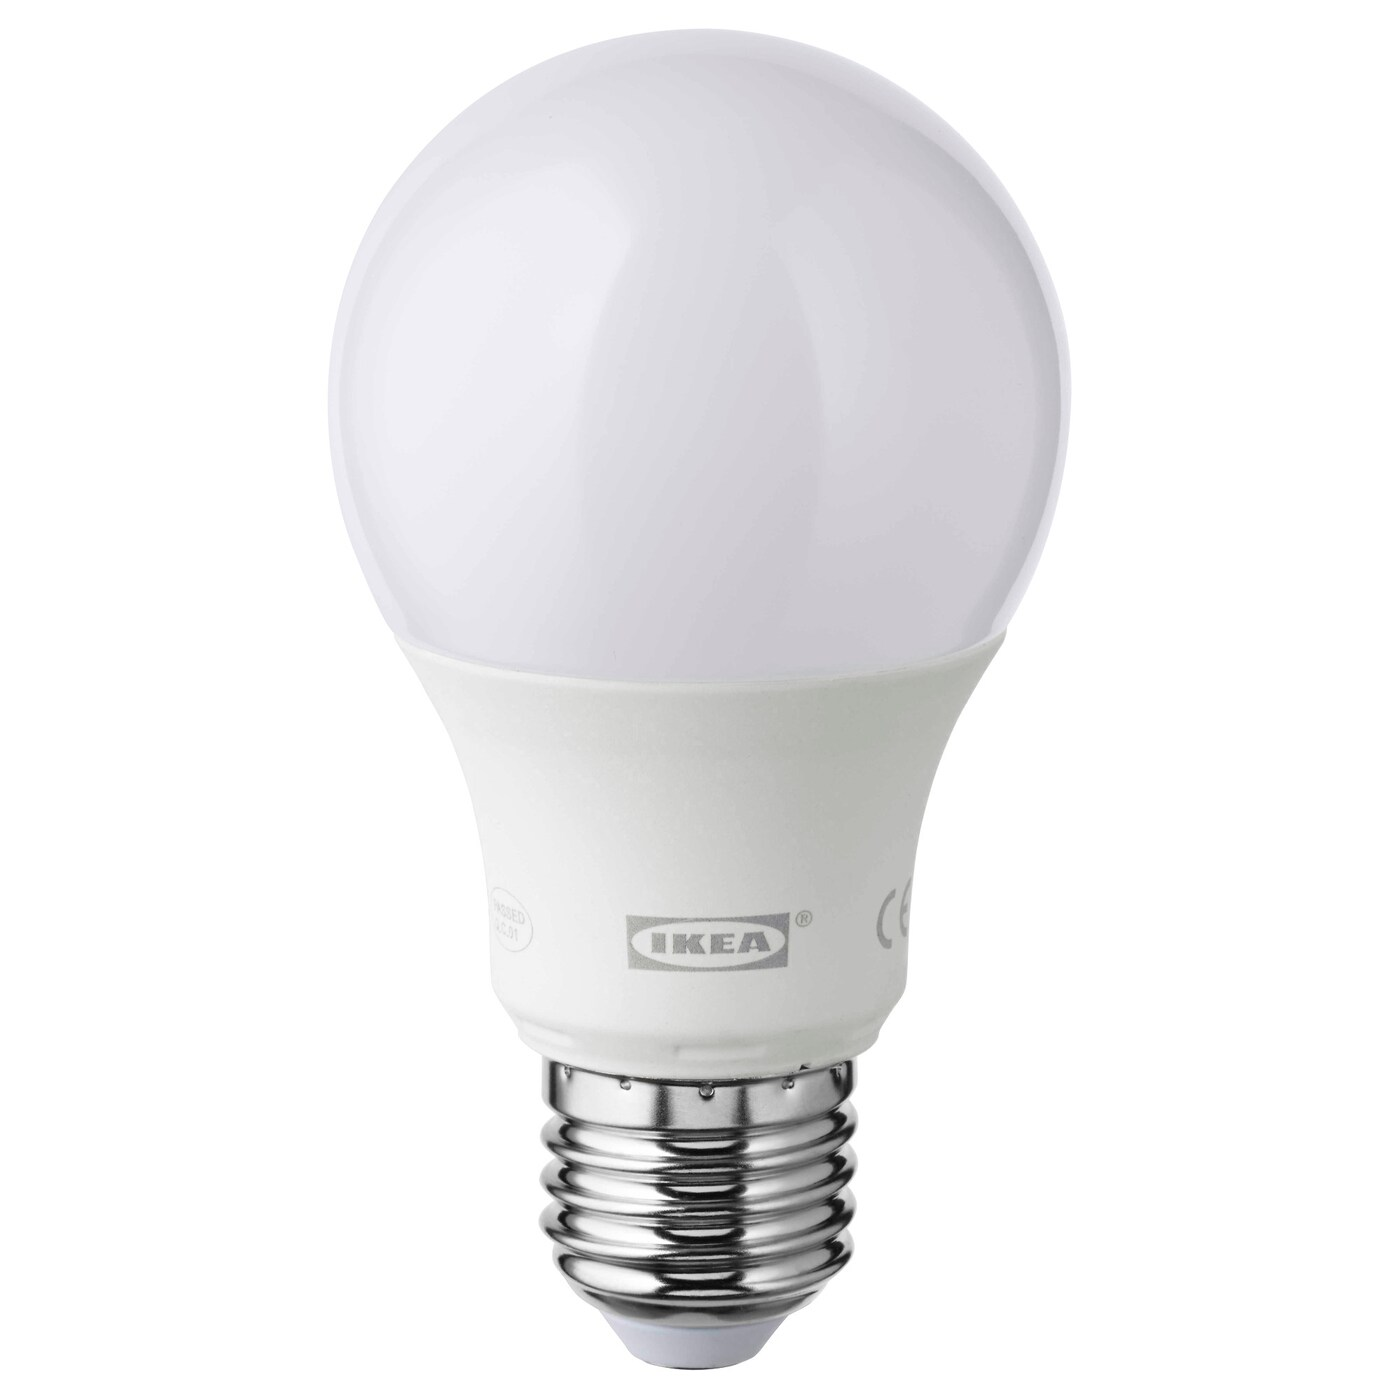 Led E27 Light Bulbs Shop At Ikea Ireland